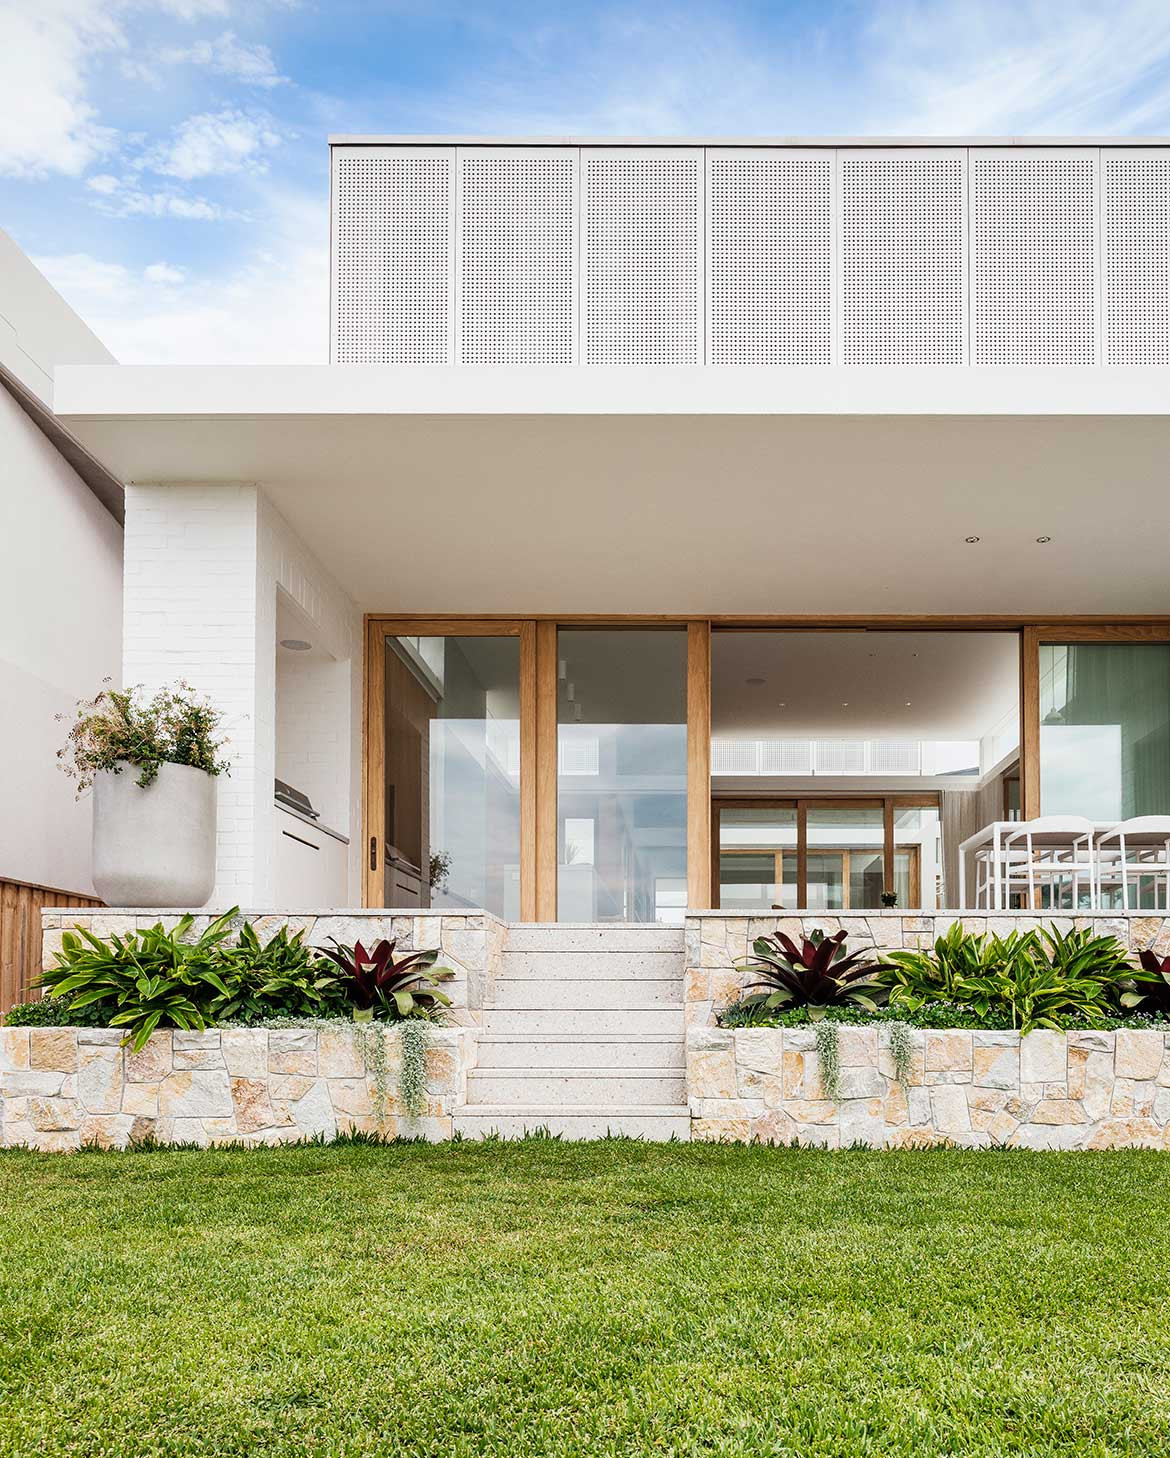 South Coogee House Madeleine Blanchfield Architects cc Robert Walsh backyard